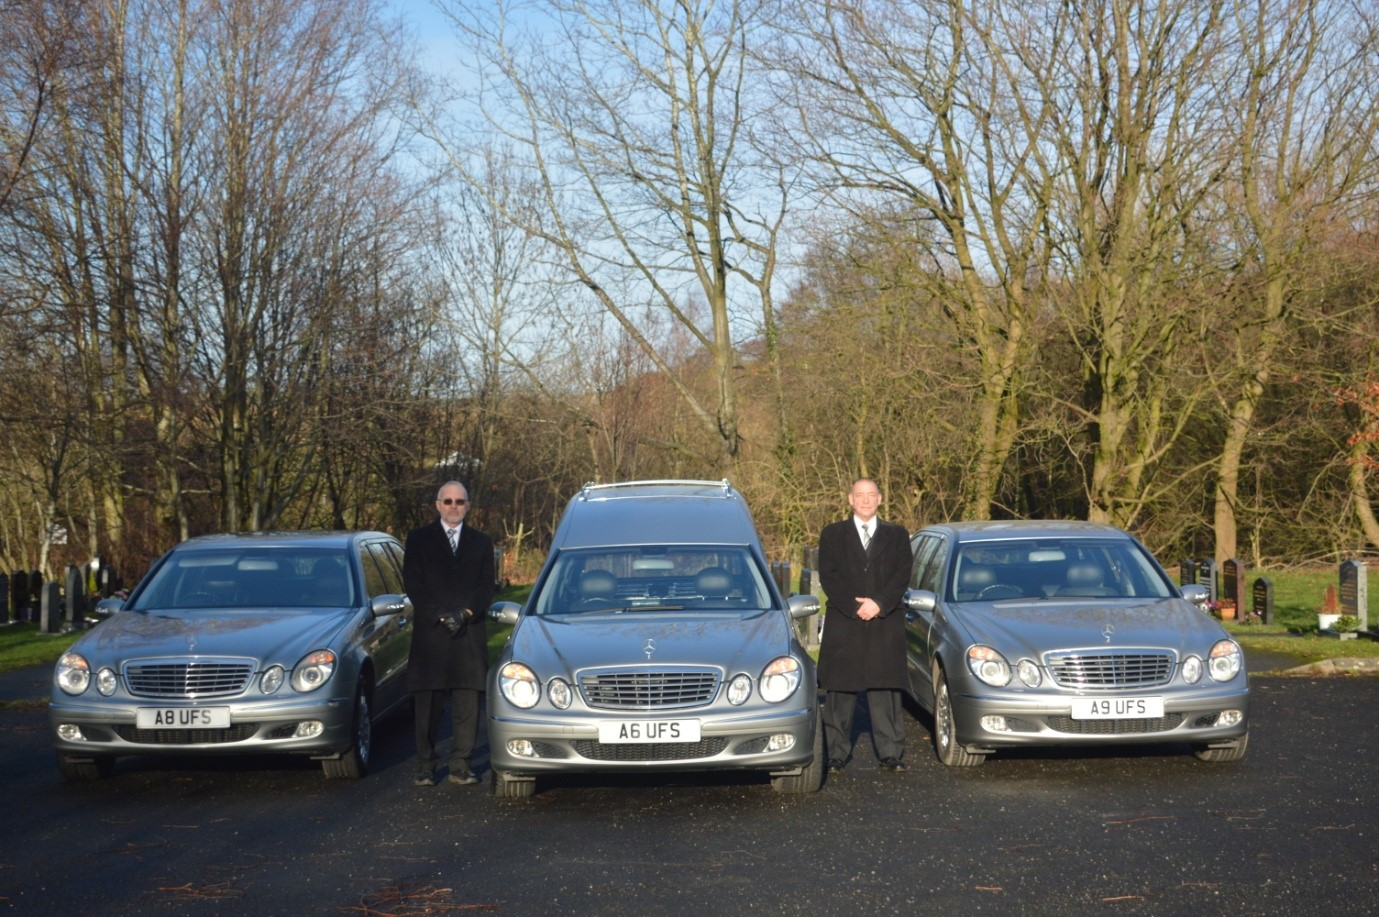 hearse and limousines